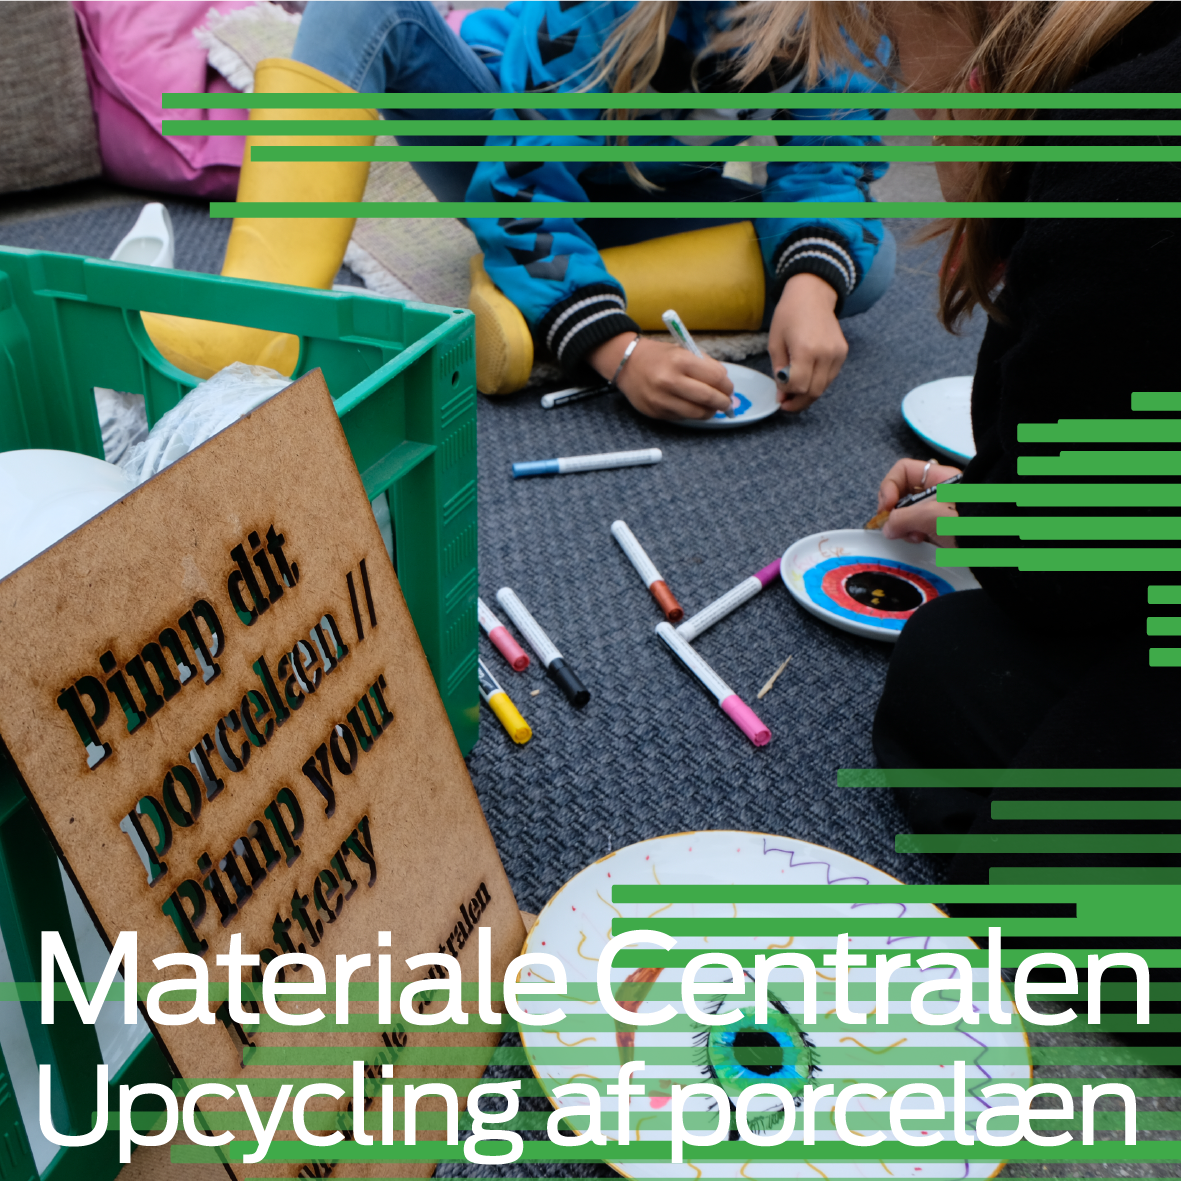 Materiale Centralen: Porcelain Upcycling